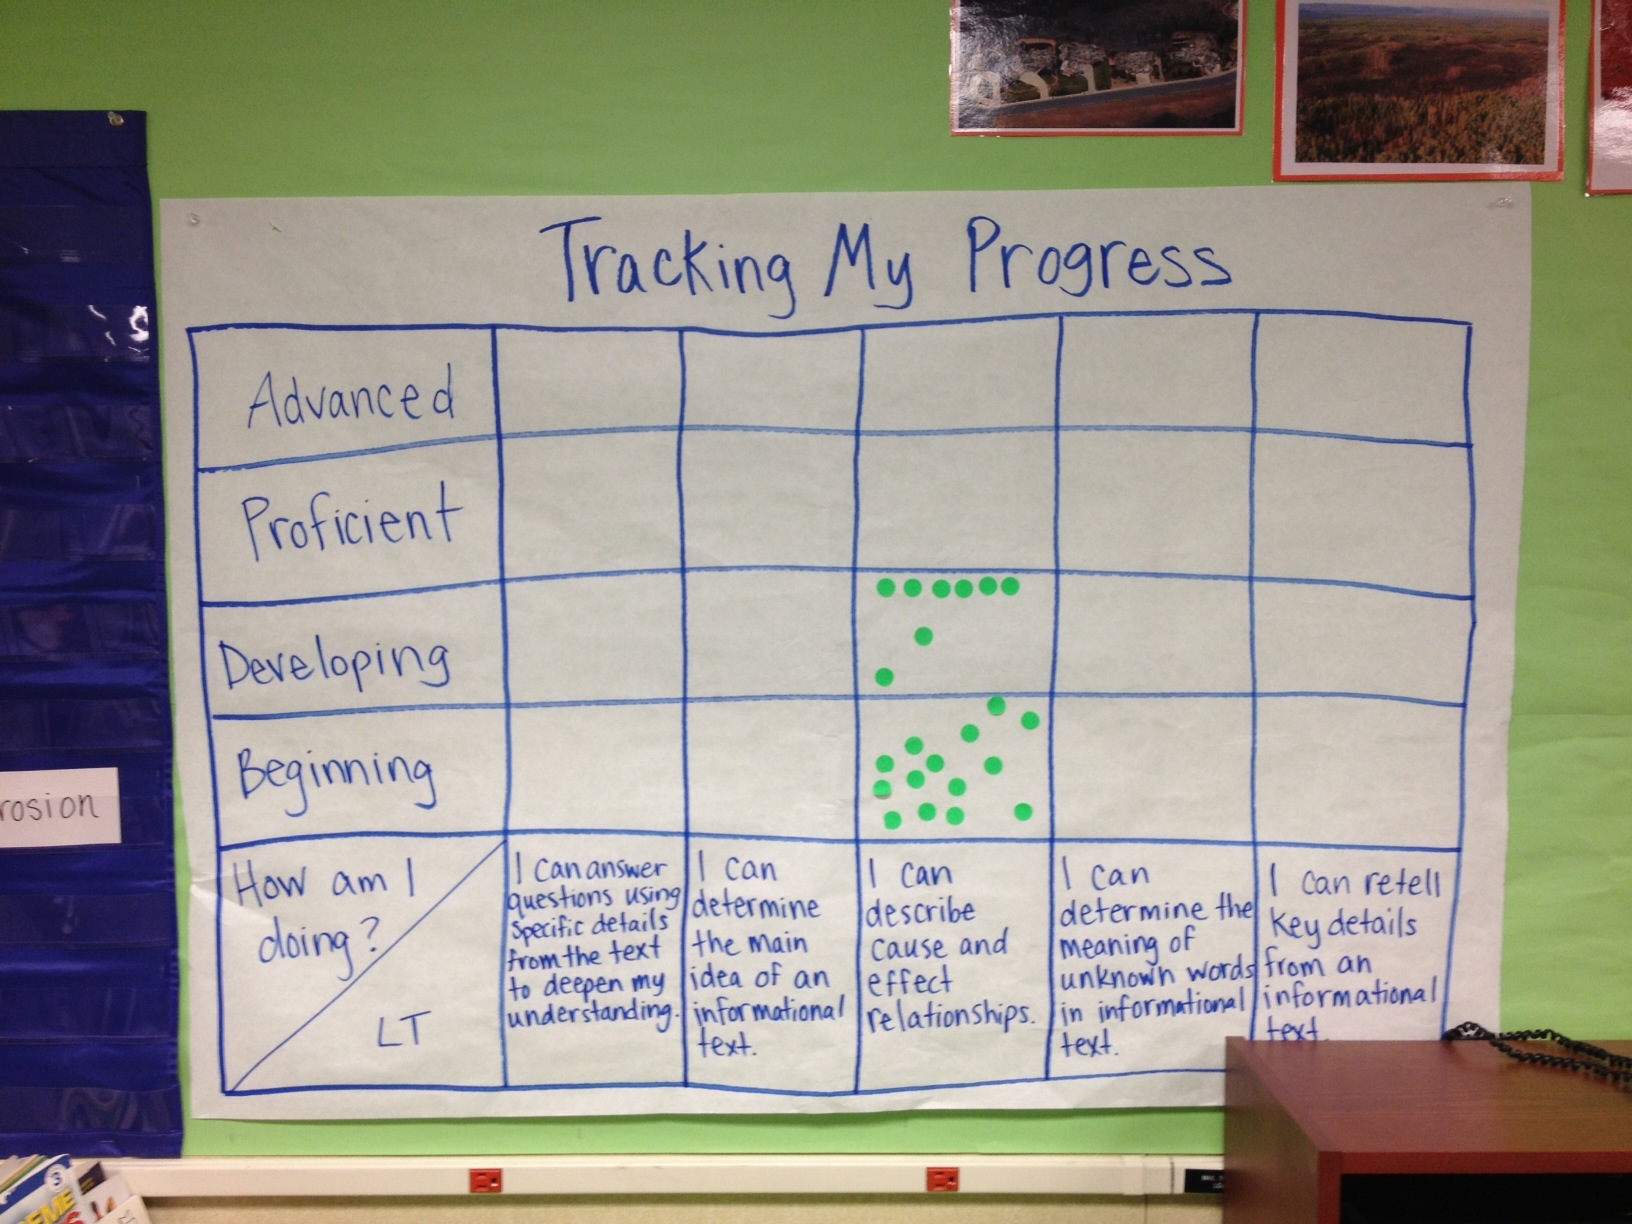 ms houser tag archive tracking progress